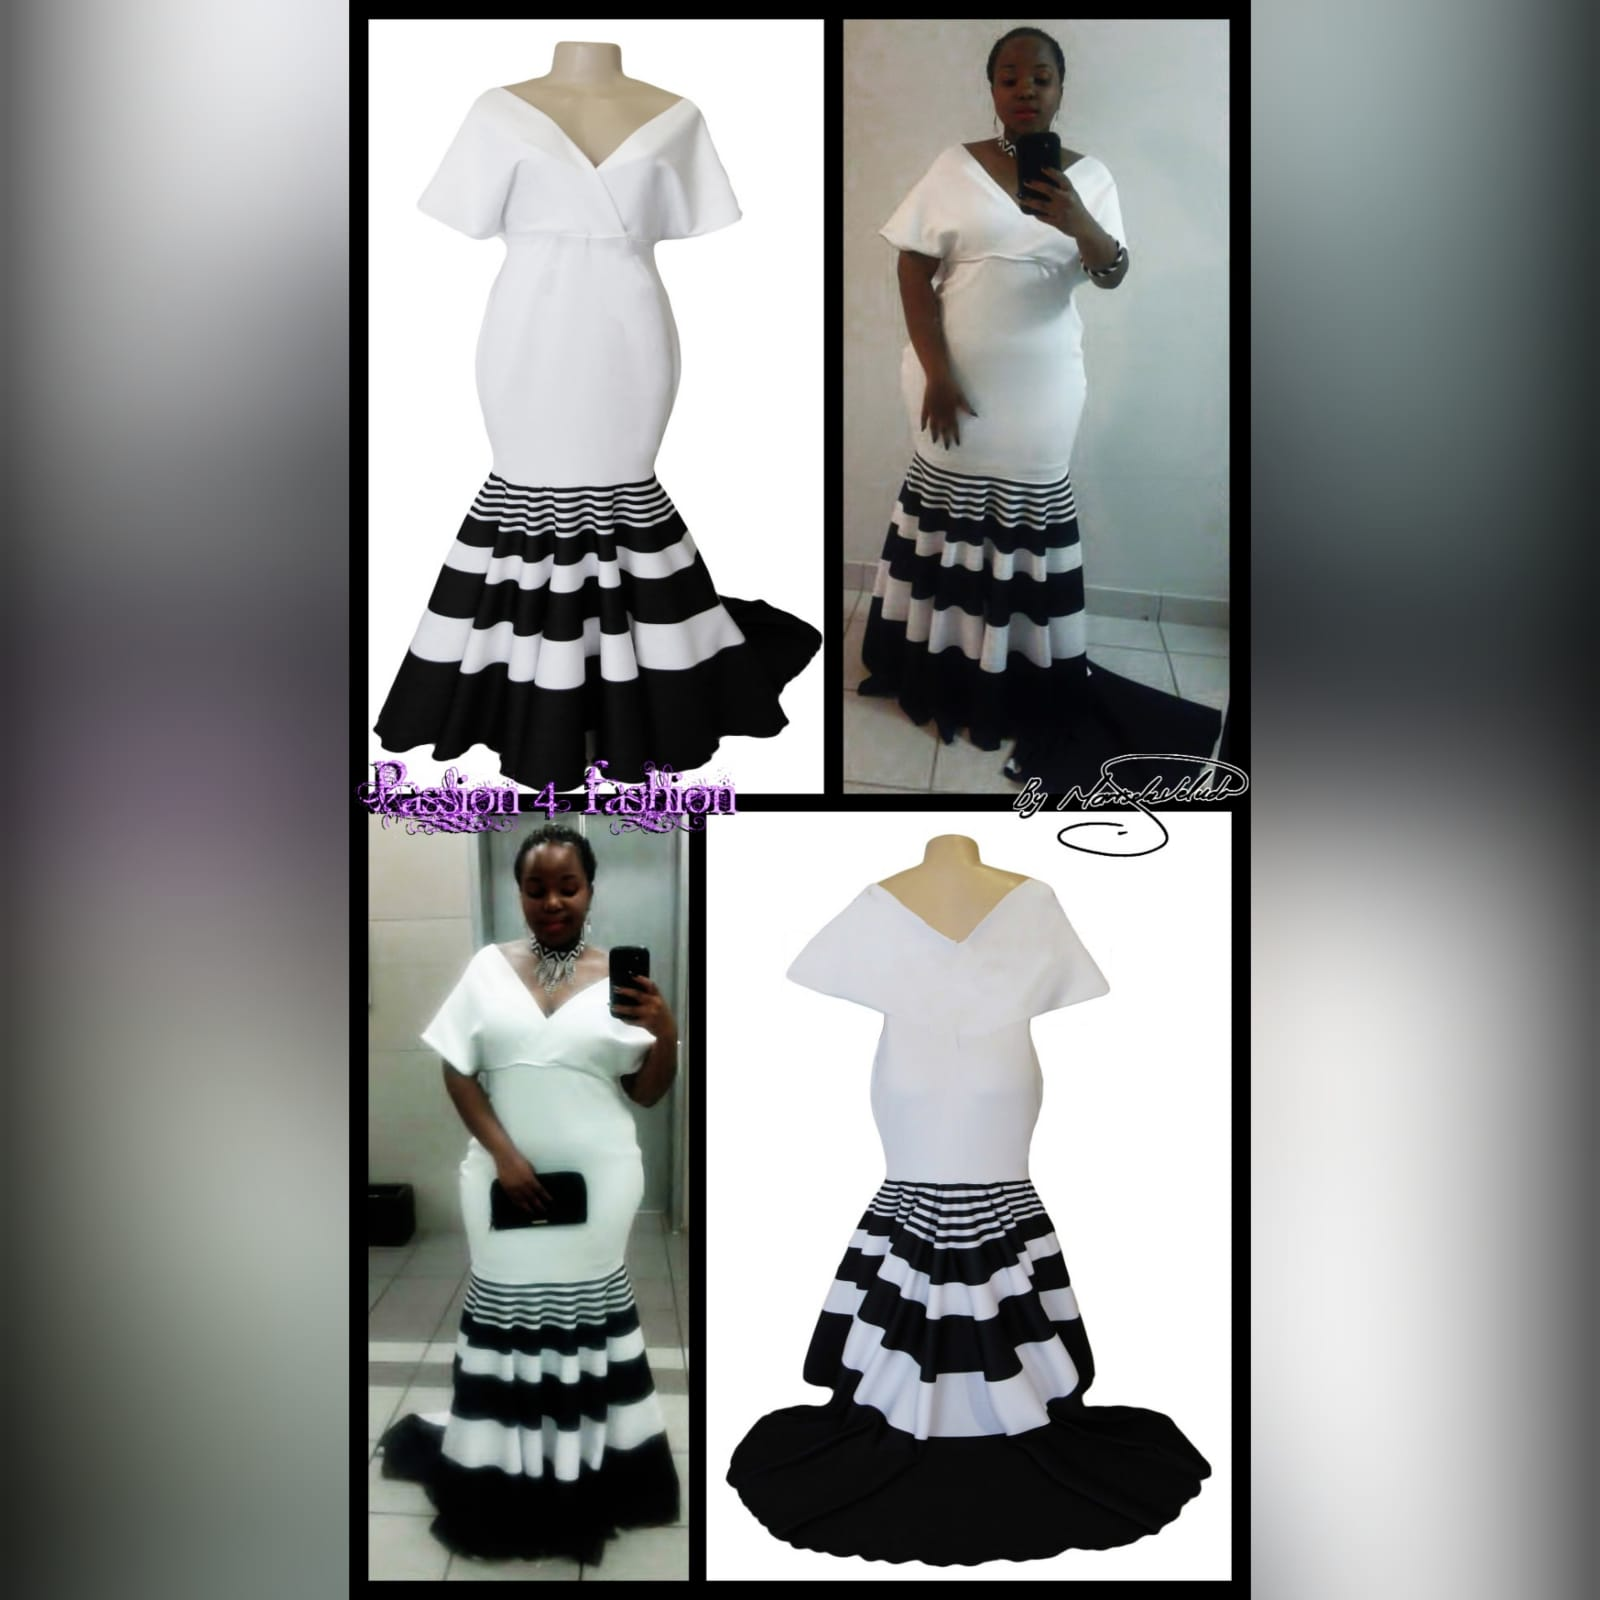 Black and white striped soft mermaid prom dress 4 black and white striped soft mermaid prom dress with a train. With a cross bust neckline with wide shoulders creating a wide short sleeve. The print is known as a traditional xhosa print in south africa.